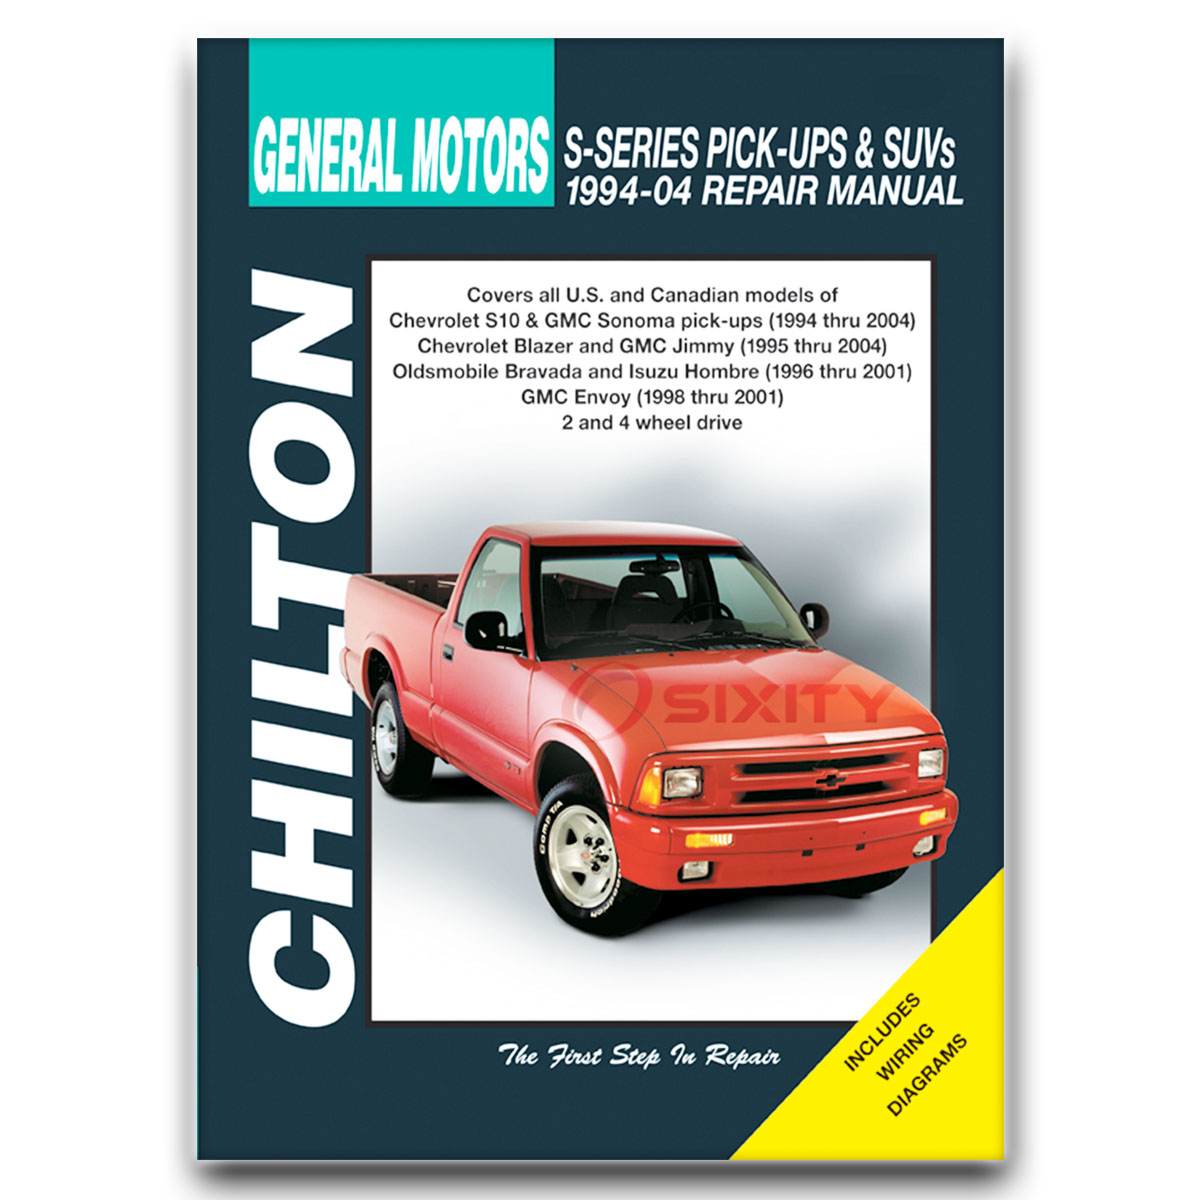 2003 gmc sonoma repair manual free owners manual u2022 rh wordworksbysea com 1998 gmc sonoma repair manual download free 1988 GMC Sonoma